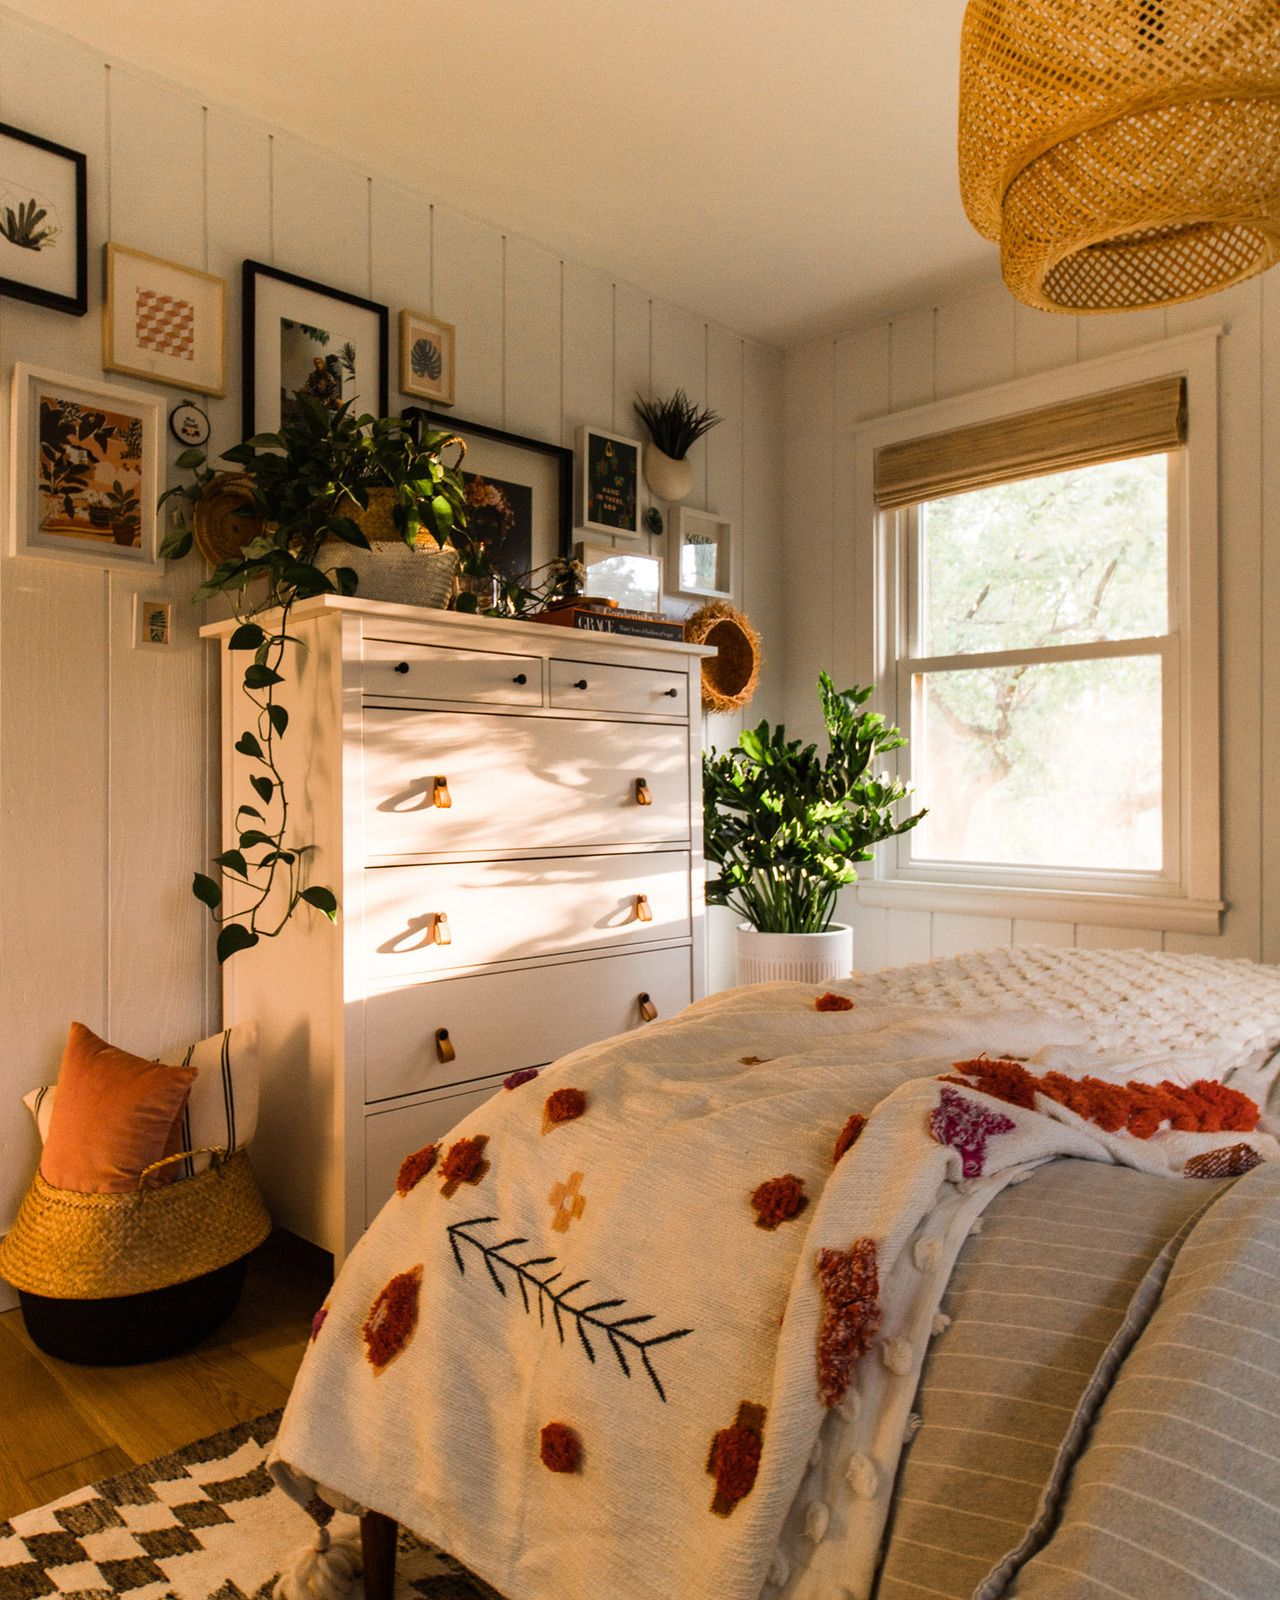 This Room Uses The Natural Light To Make The Room Feel